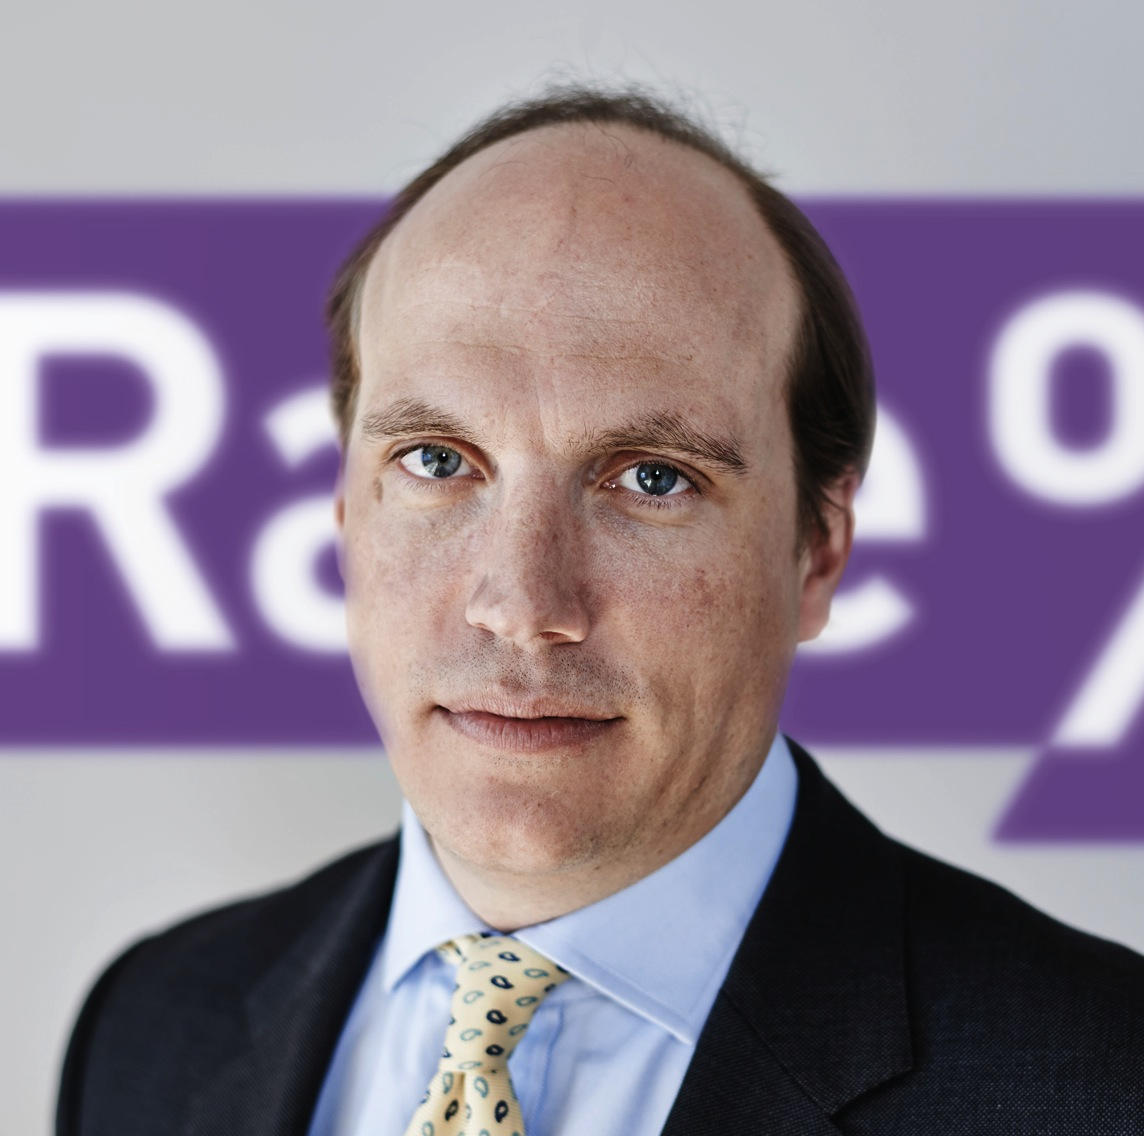 RateSetter sells off bad loans in latest attempt to bolster provision fund